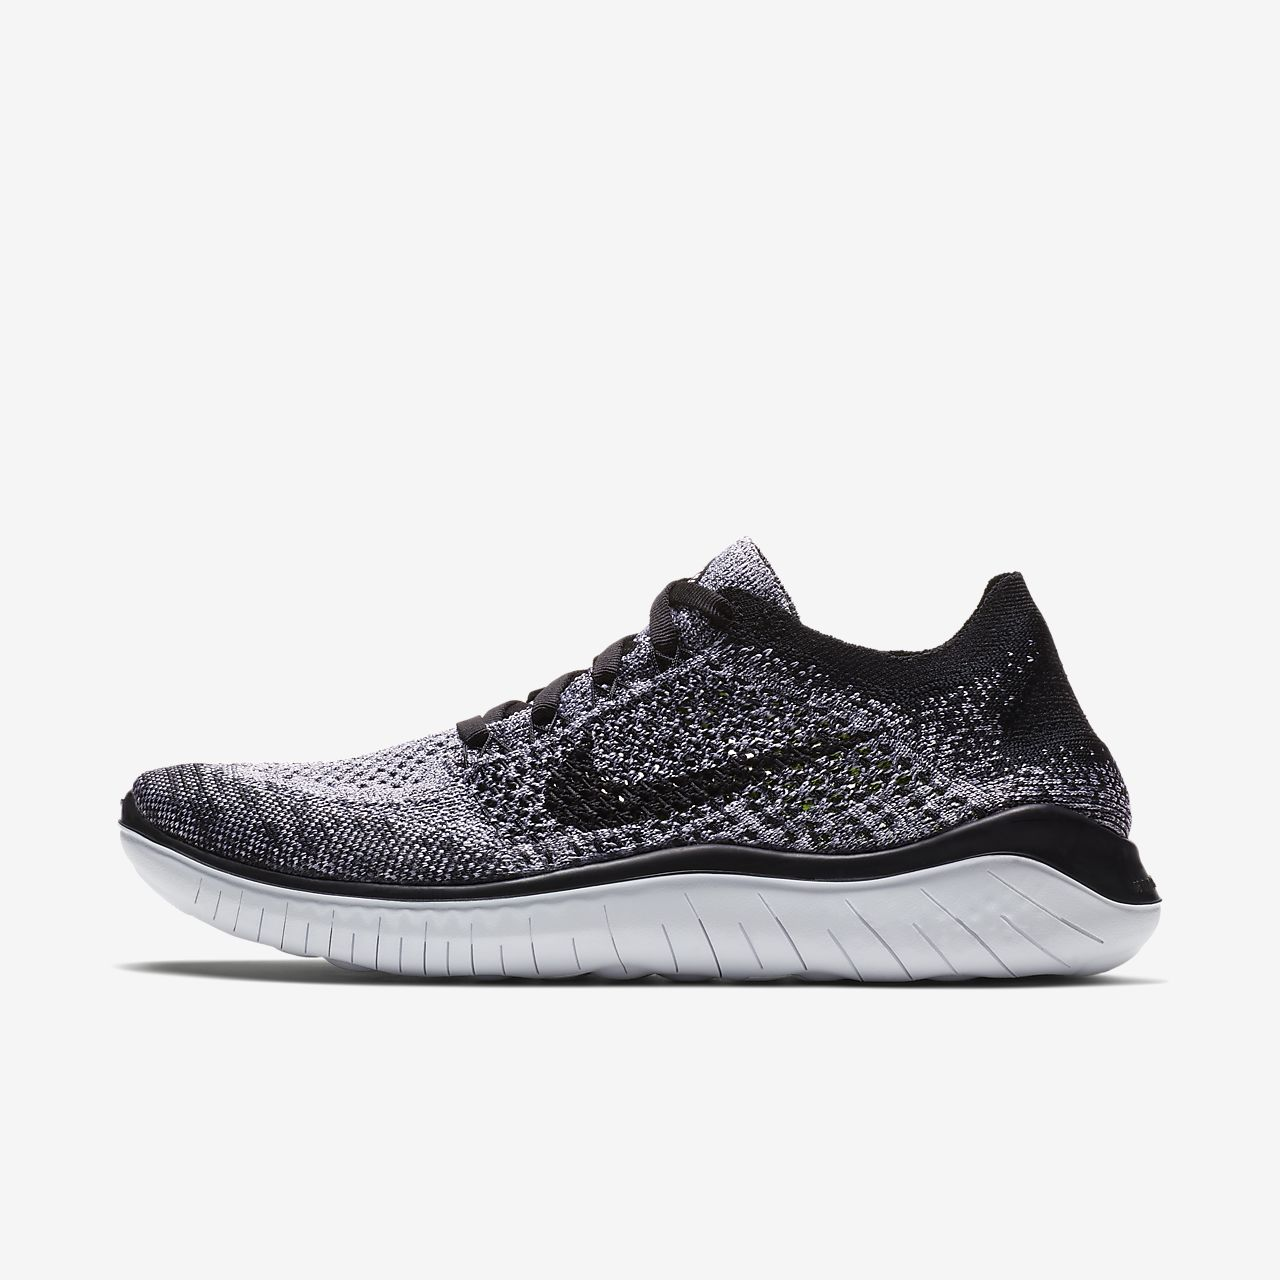 1dfc32ee71 Nike Flyknit Running Shoes : Buy Nike Sneakers & Shoes | Air force 1 ...